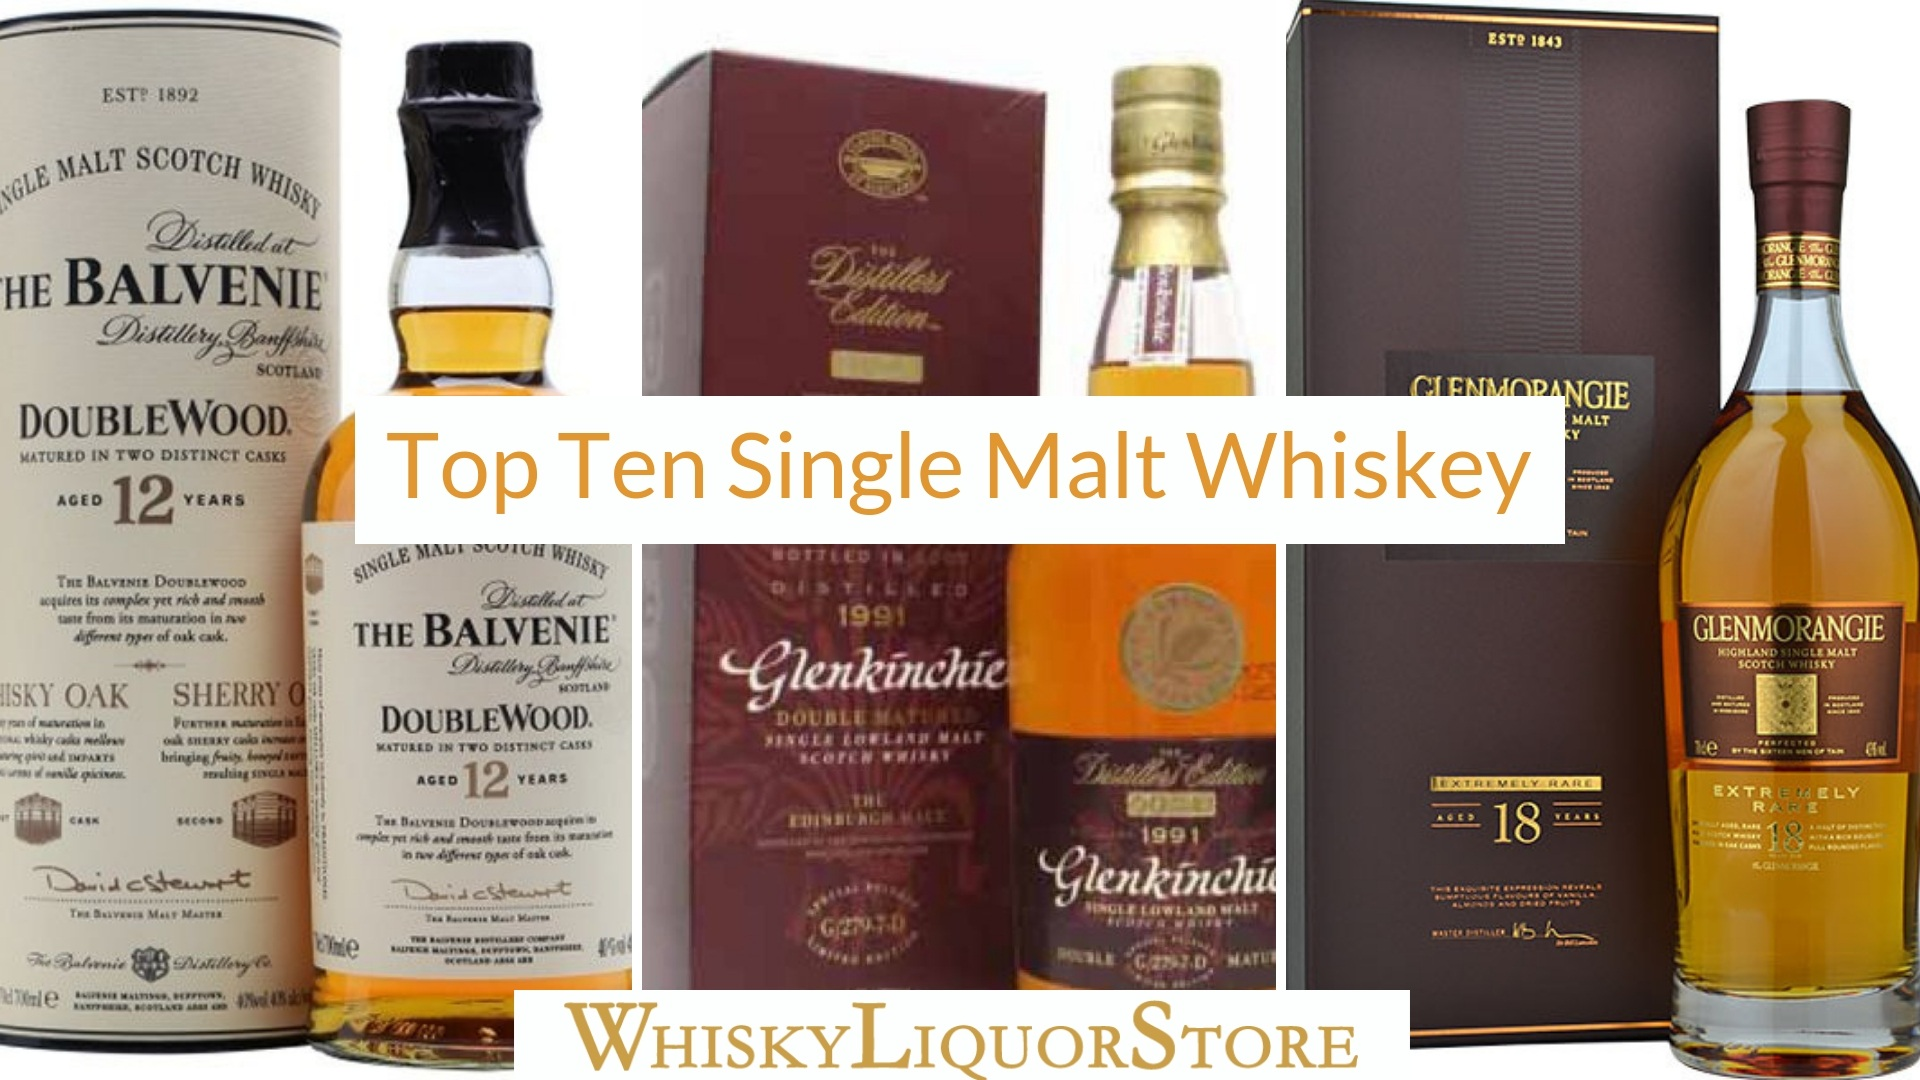 Top Ten Single Malt Whiskey